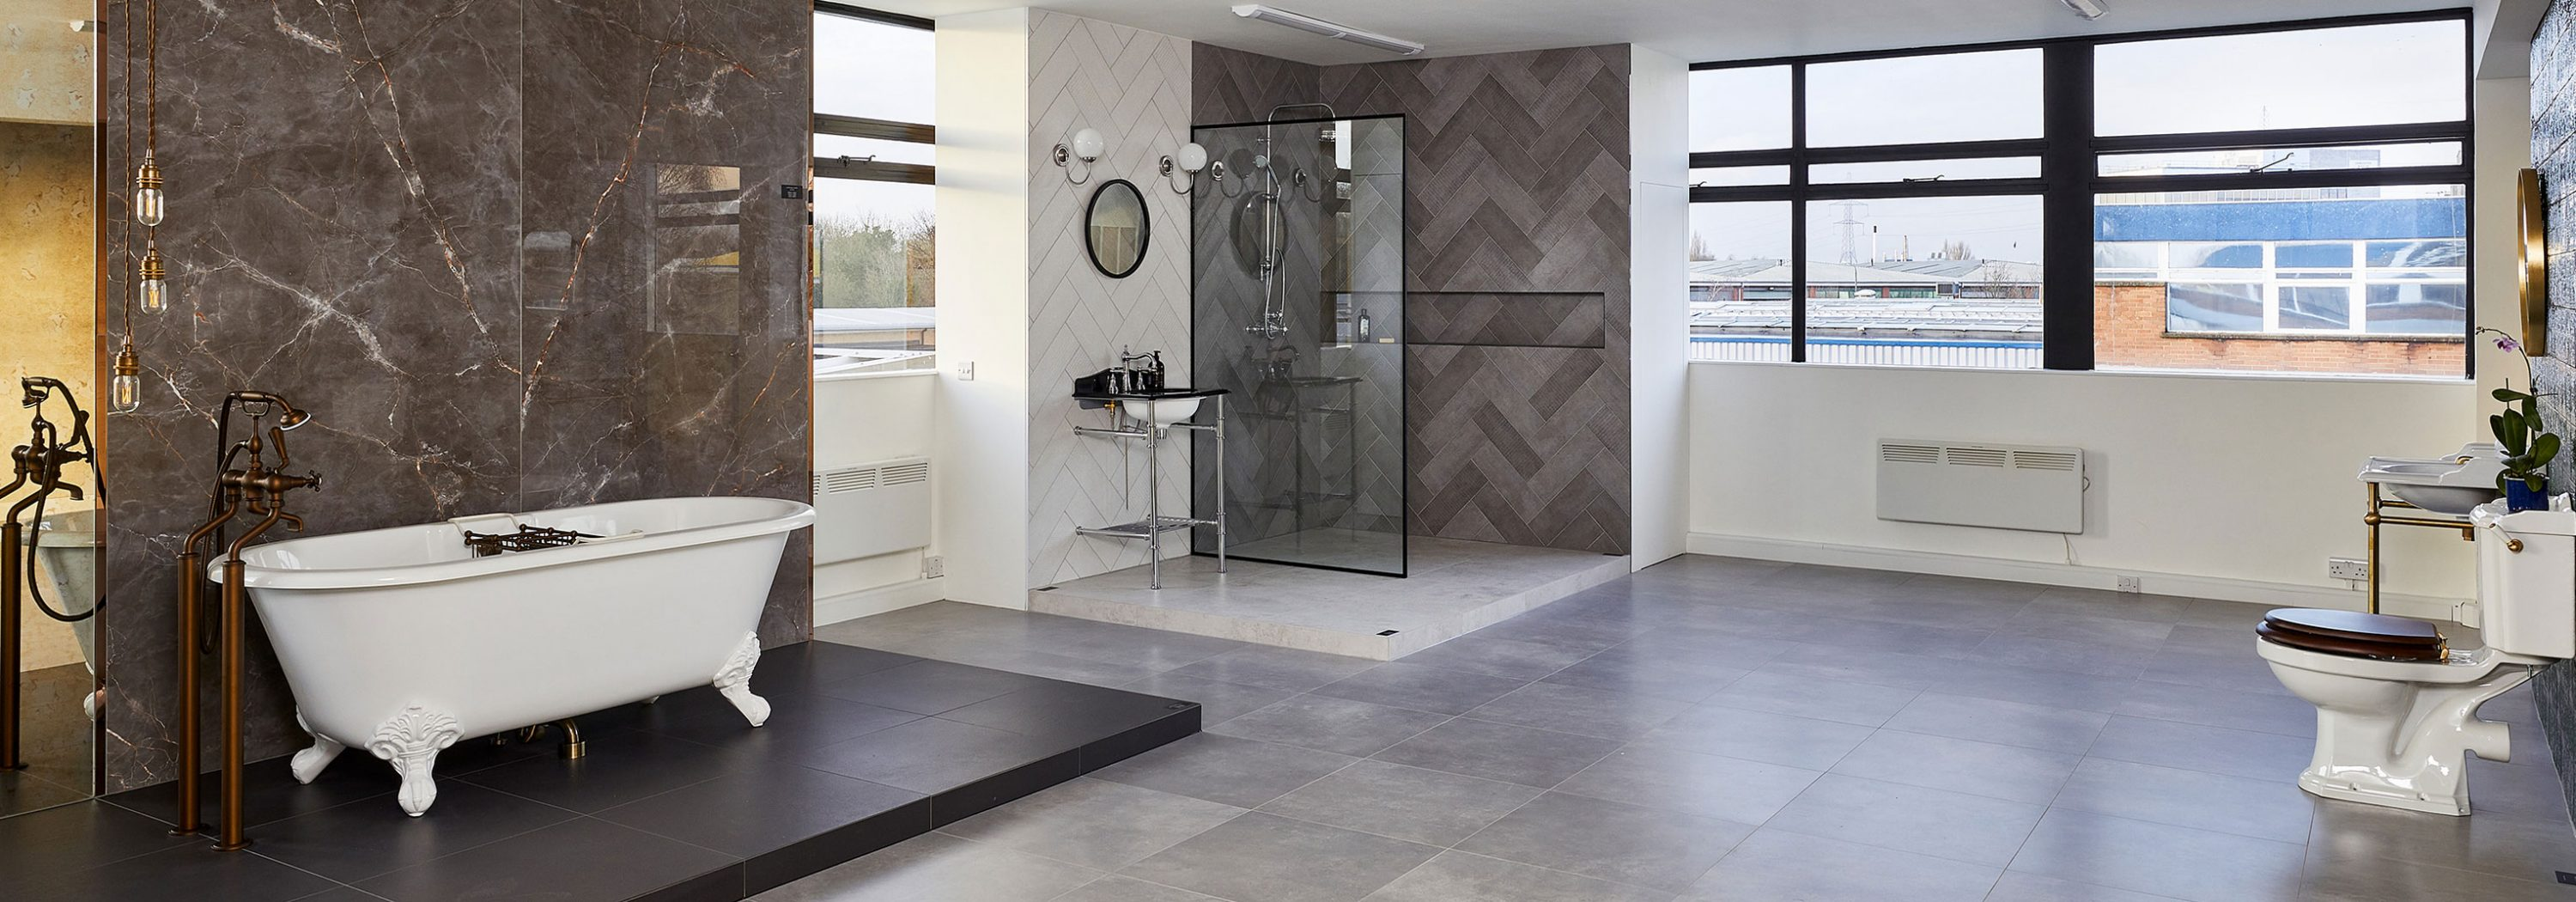 tiles-showroom-3-scaled